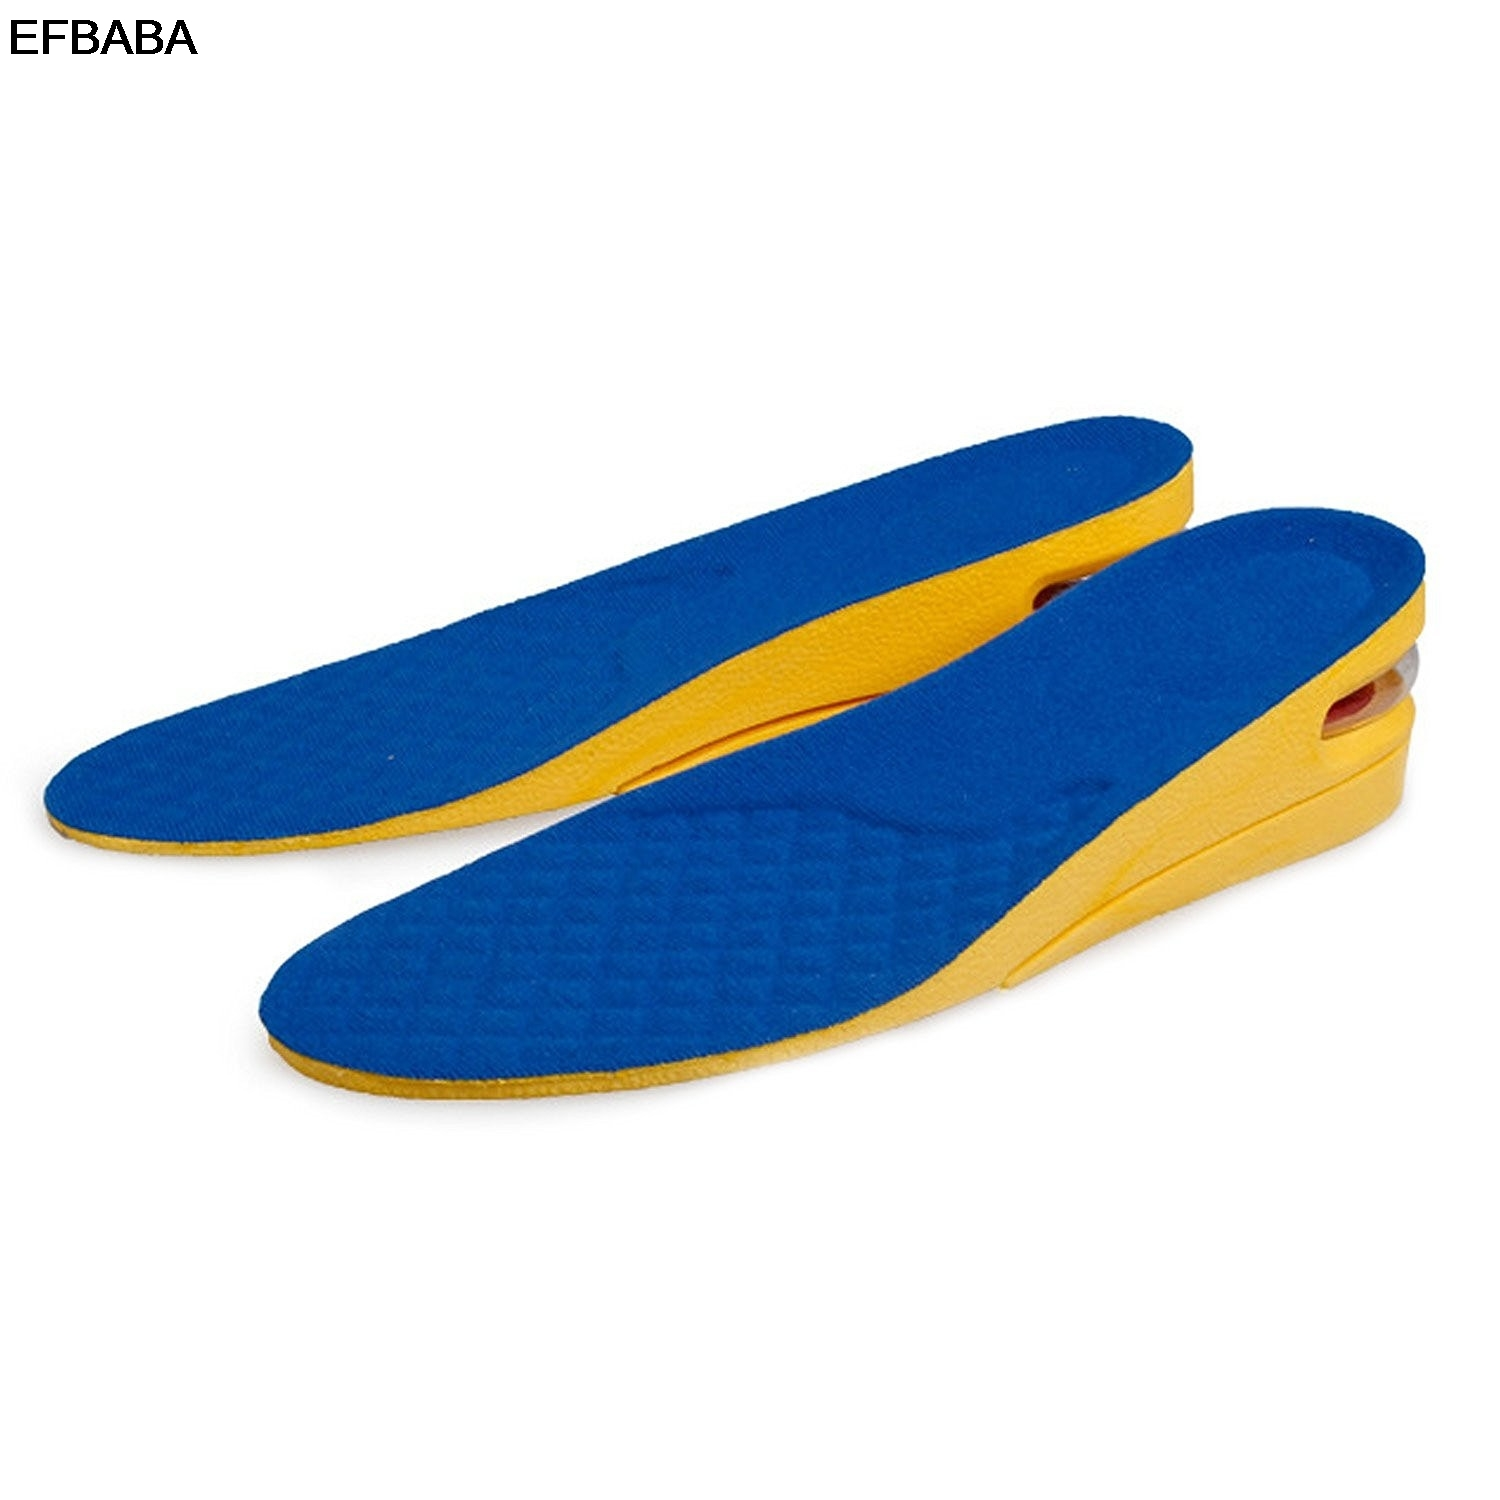 EFBABA Increased Insole Sweat Absorbent Breathable Damping Sports Insoles Men Women Shoes Pad Accessories Air Cushion 1.5- 5cm